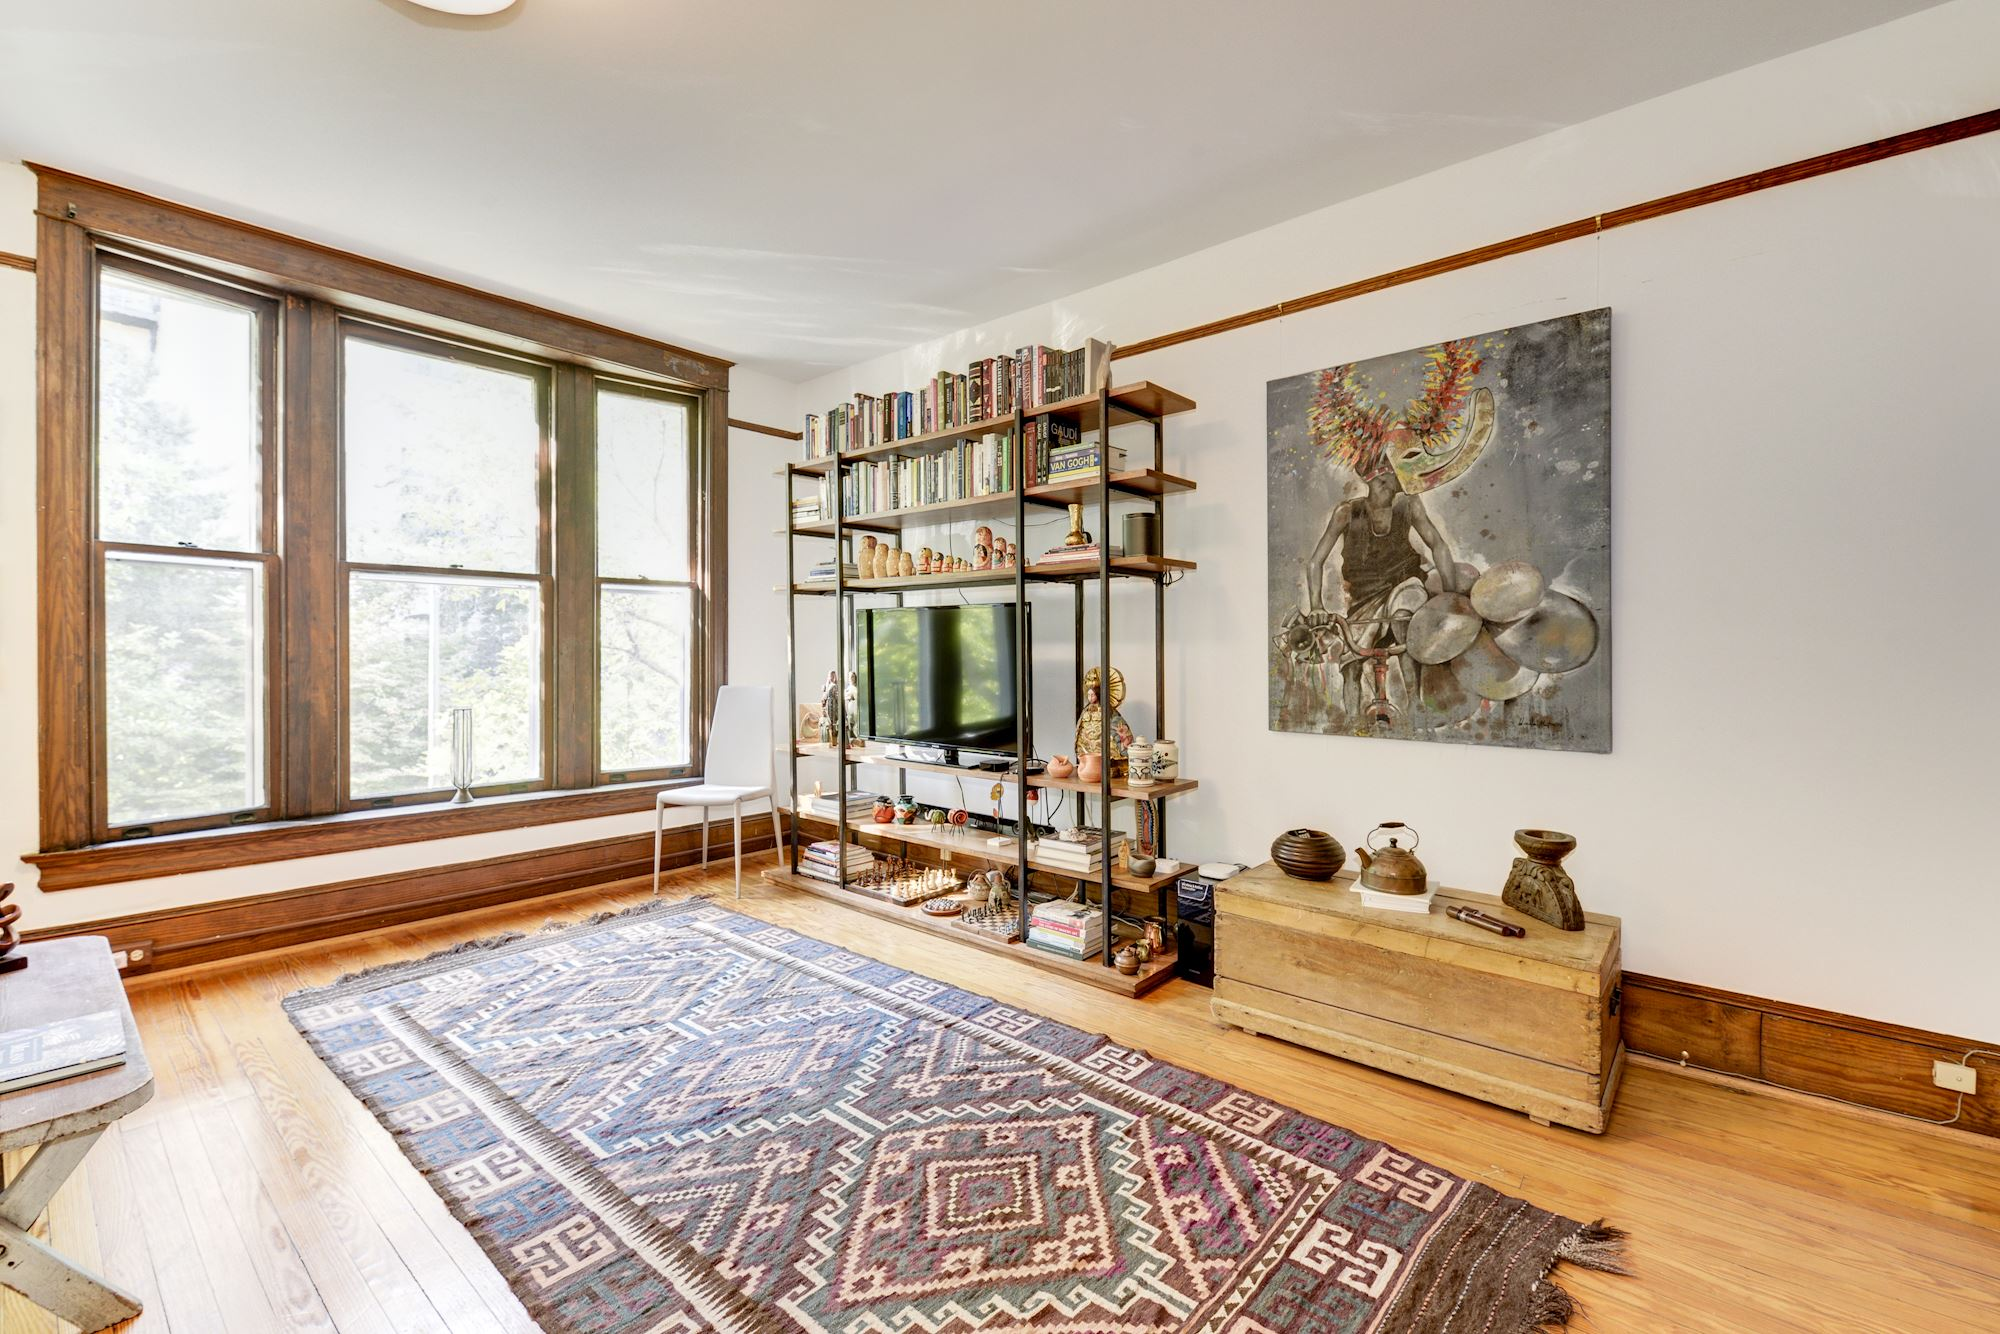 2805 18th Street NW,Washington,District Of Columbia 20009,6 Bedrooms Bedrooms,3 BathroomsBathrooms,Single Family Home,18th Street,1029